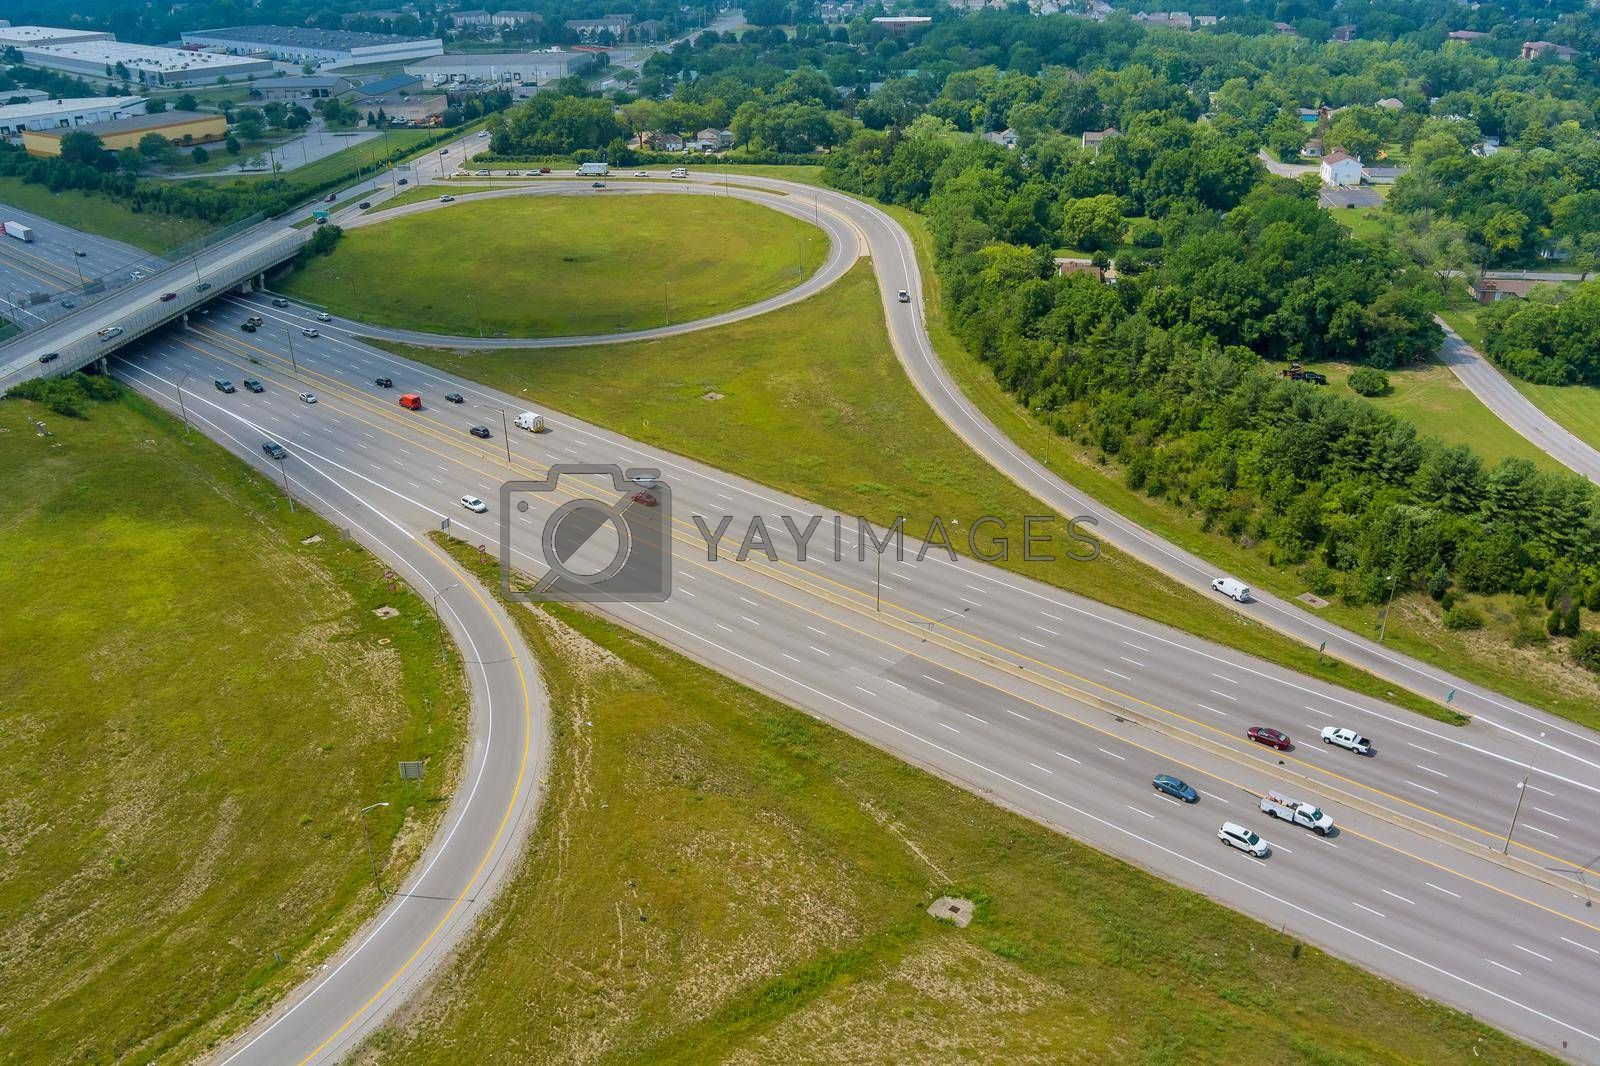 Royalty free image of Aerial view in Interstate 70 running through the Scioto Woods, Columbus, Ohio USA by ungvar